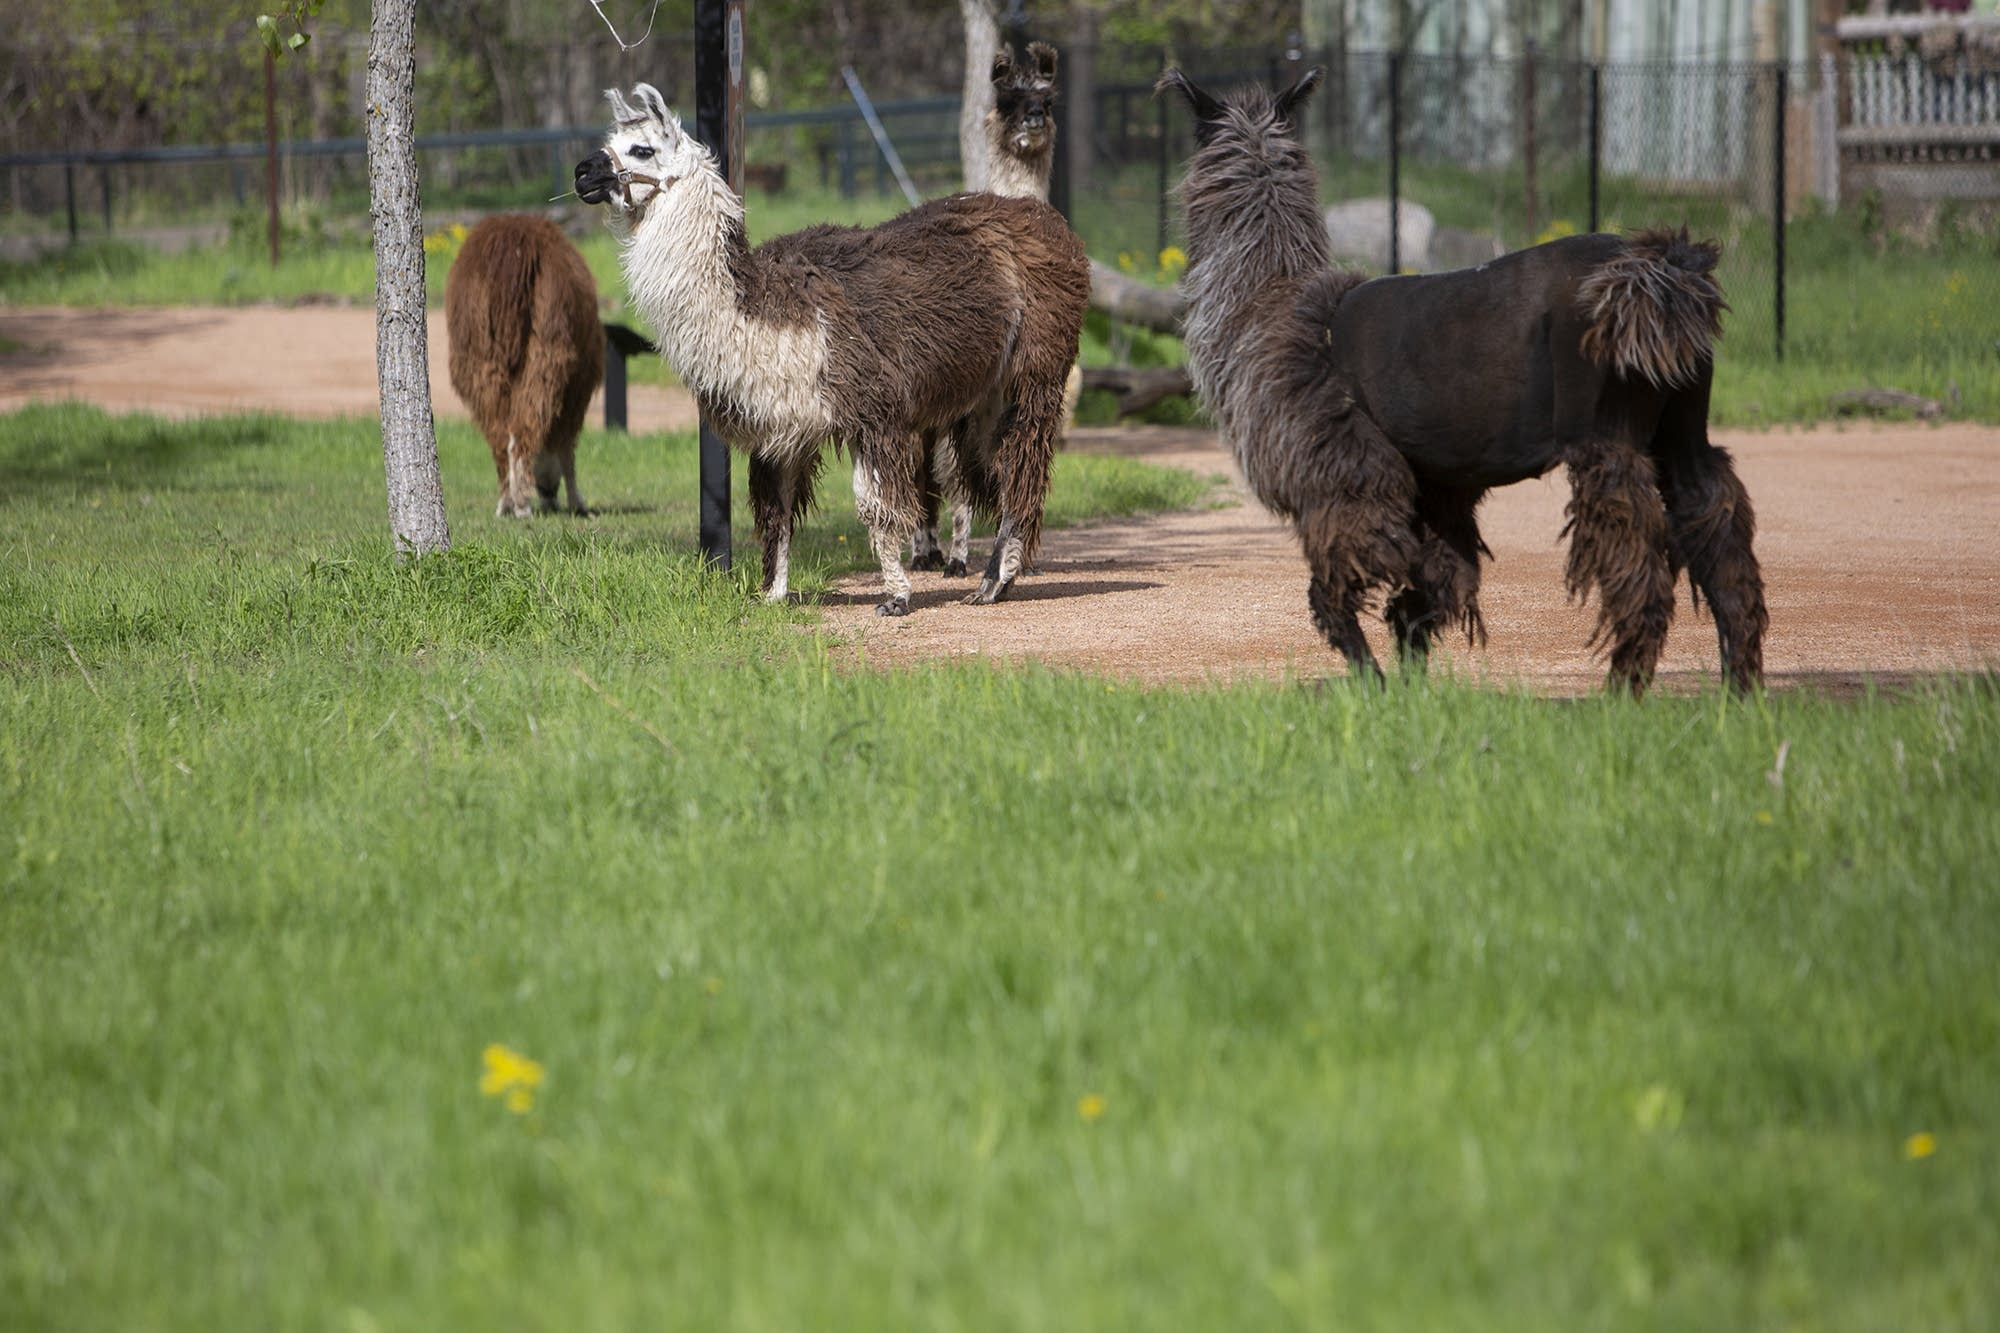 Llamas are domesticated South American herd animals.